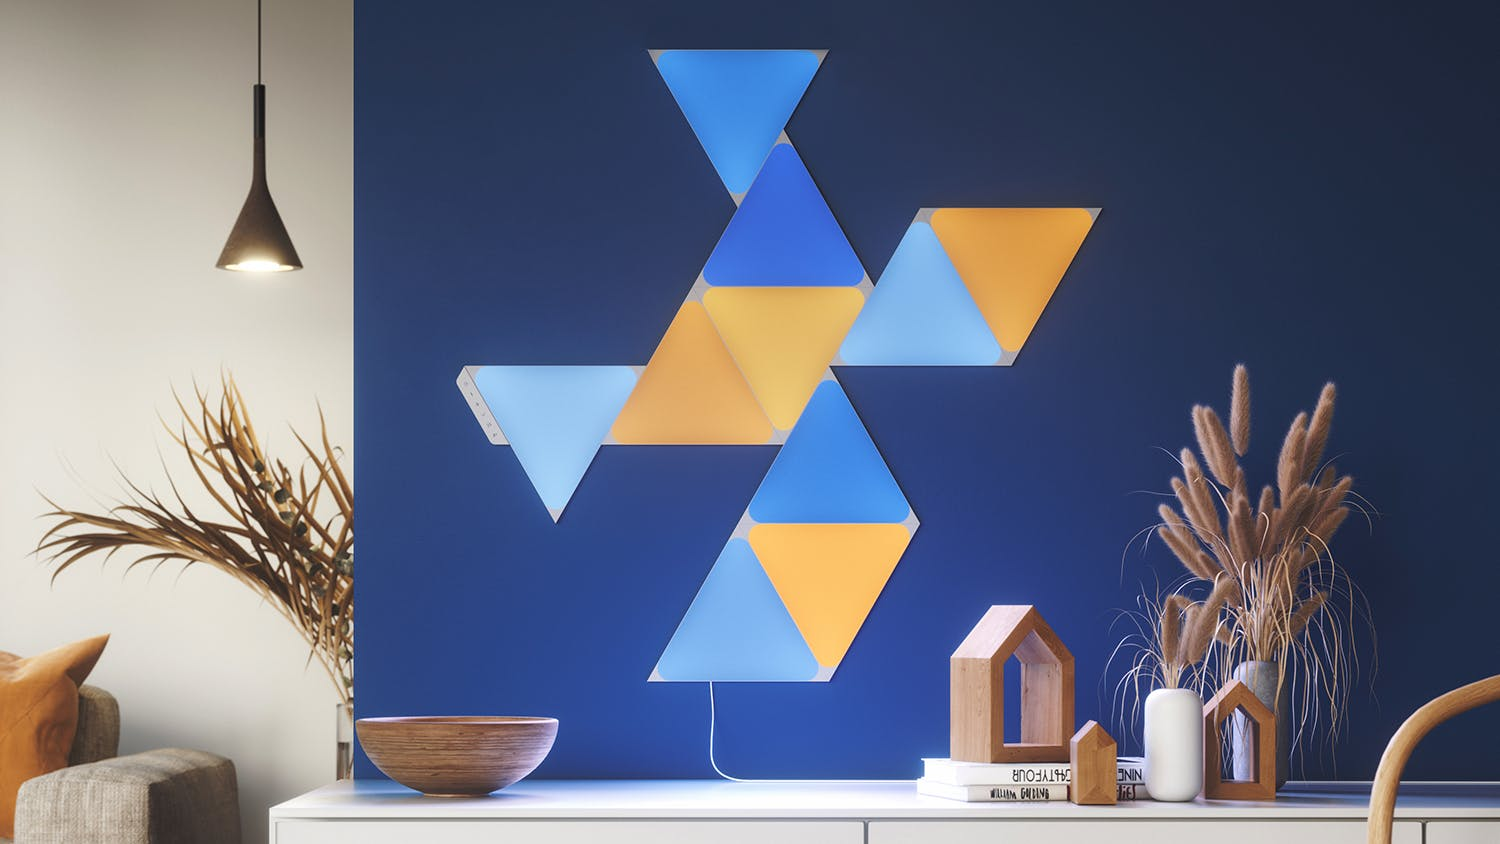 Nanoleaf Shapes Triangles Expansion - 3 Pack